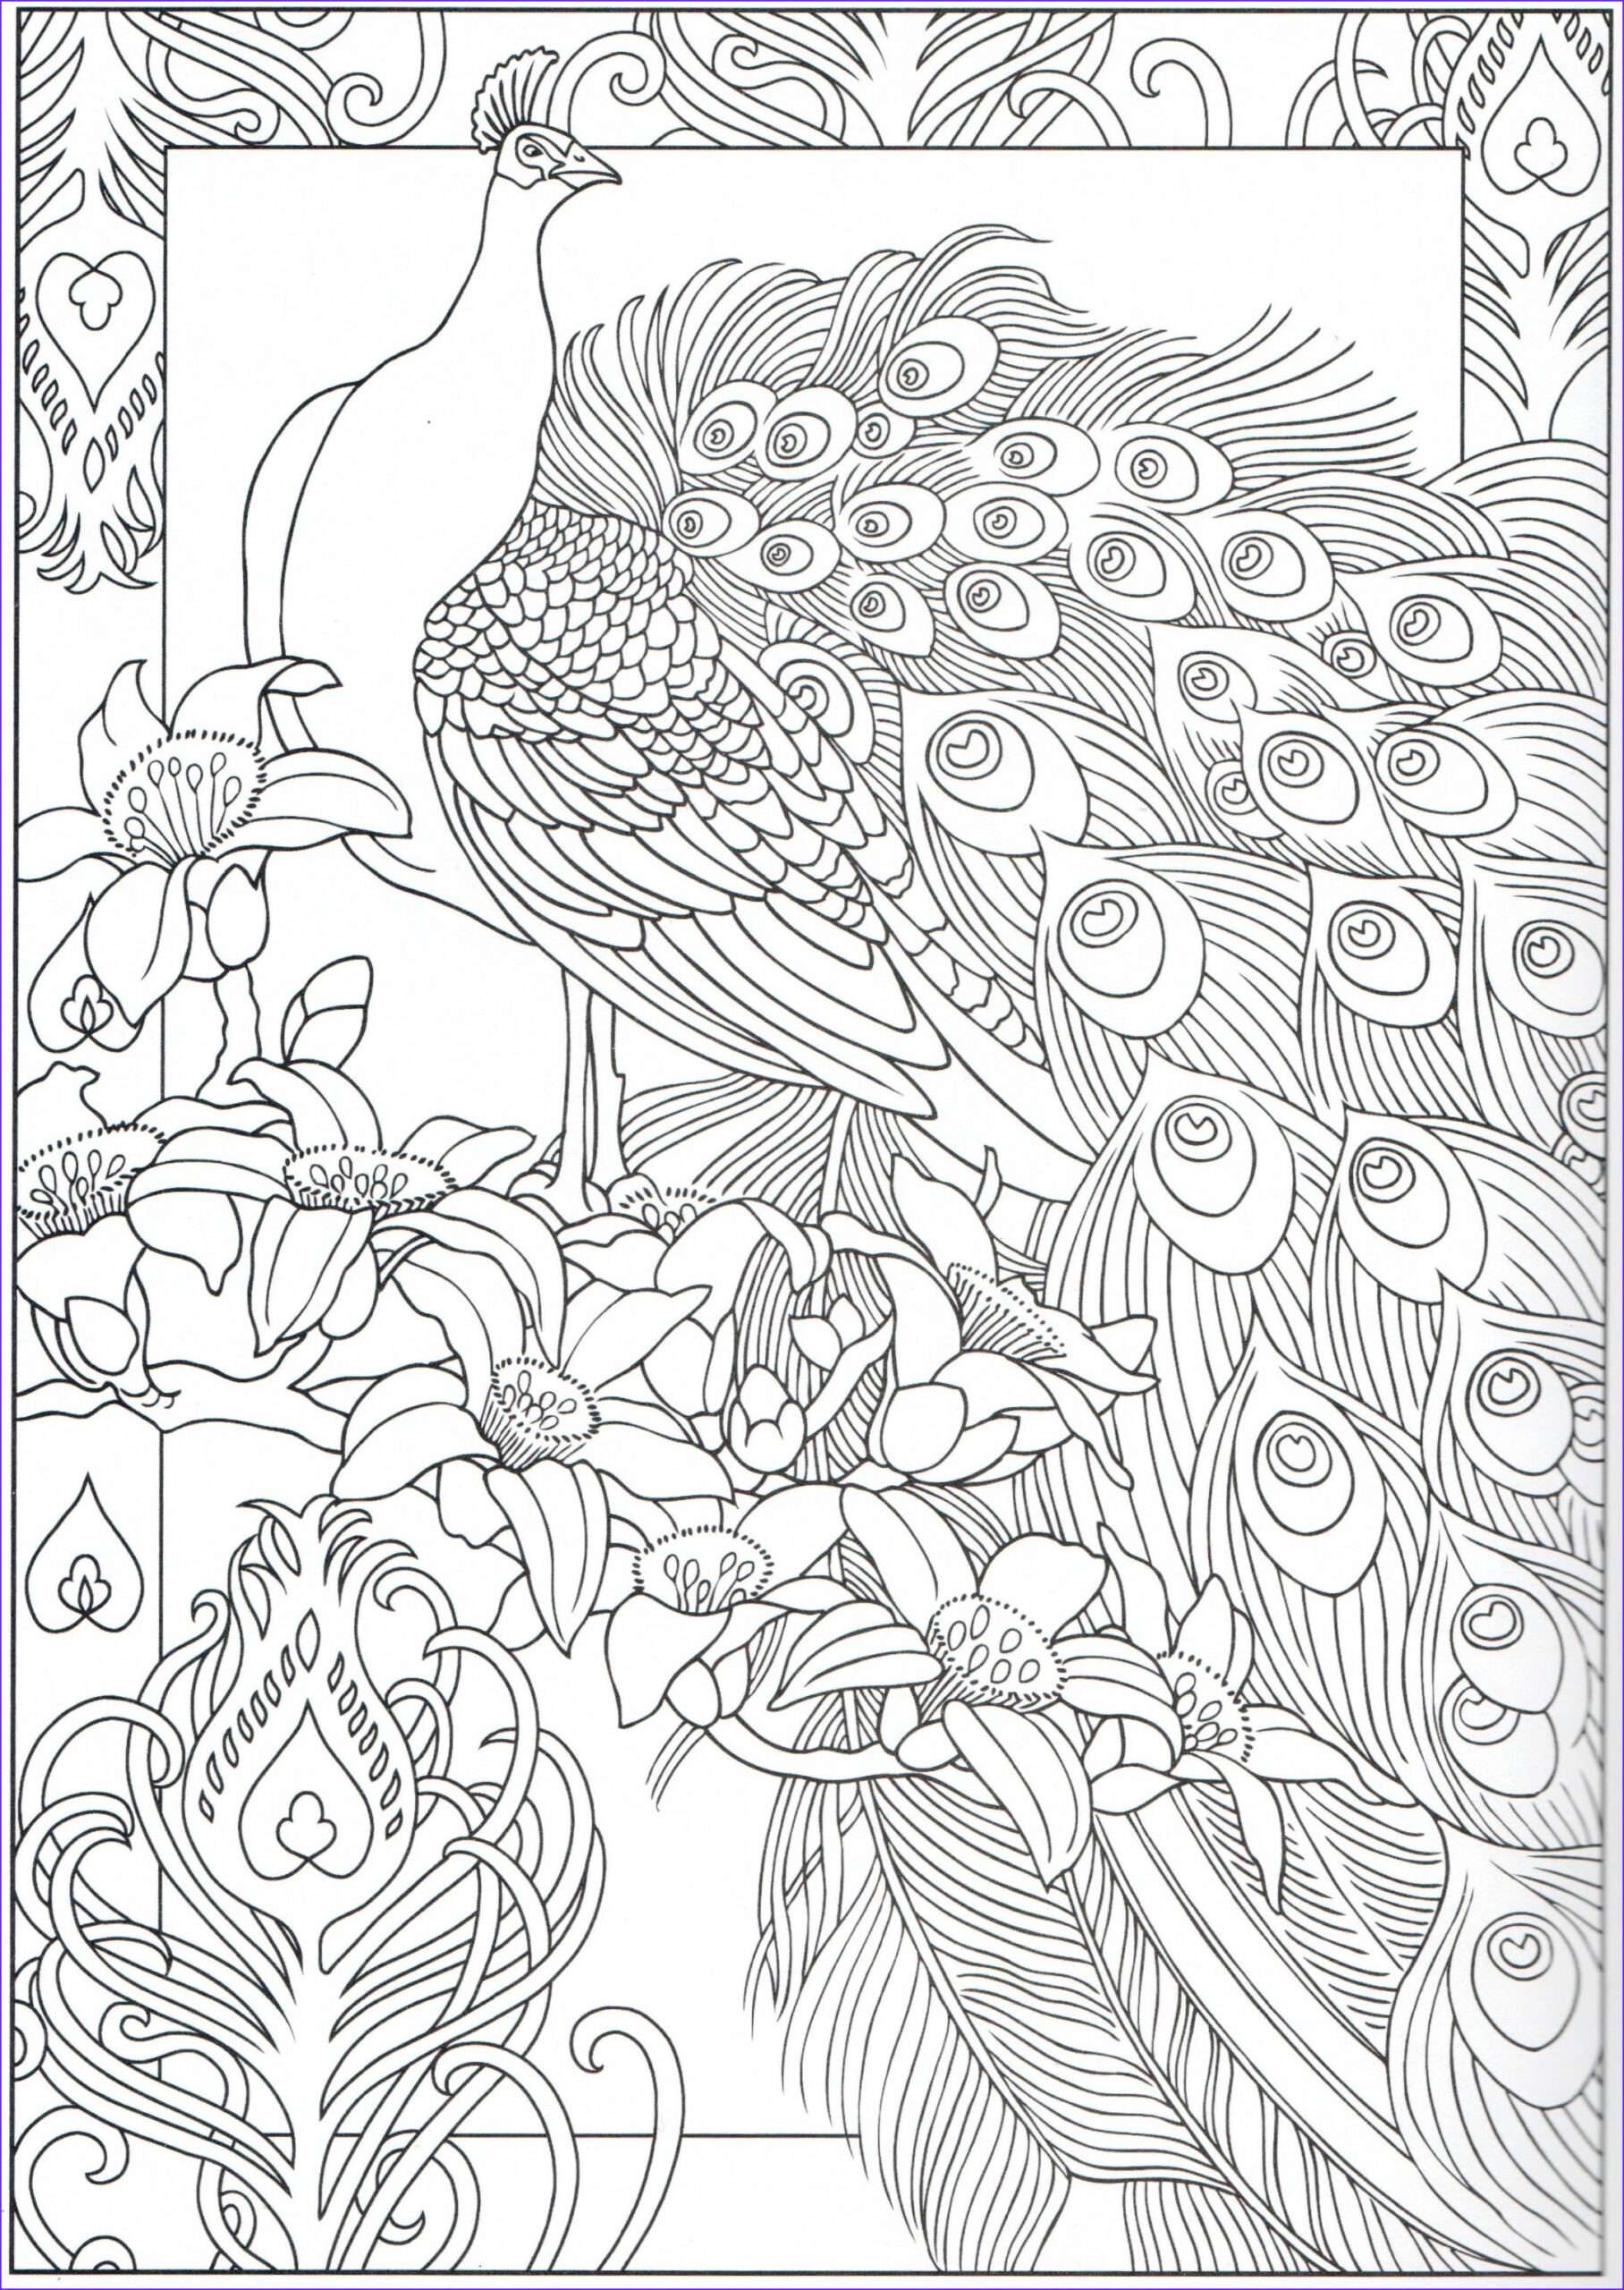 Peacock Coloring Book Best Of Gallery Peacock Coloring Page 29 31